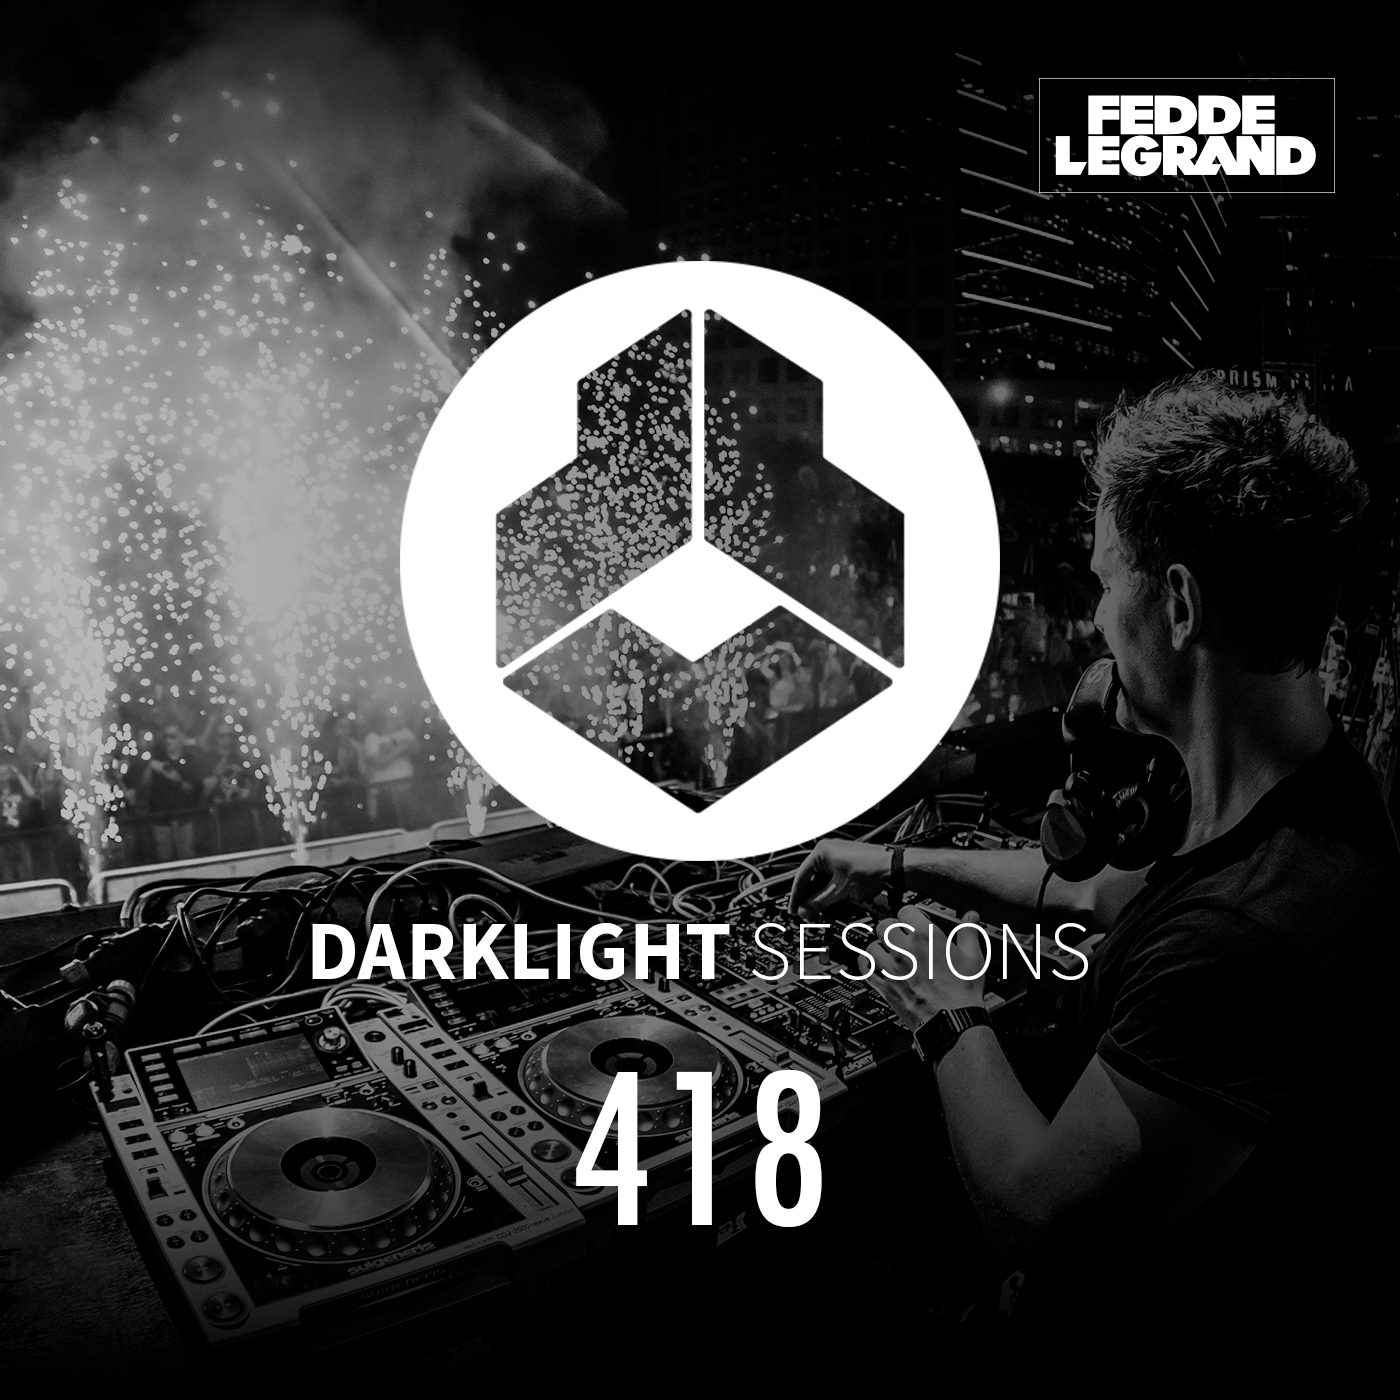 Darklight Sessions 418